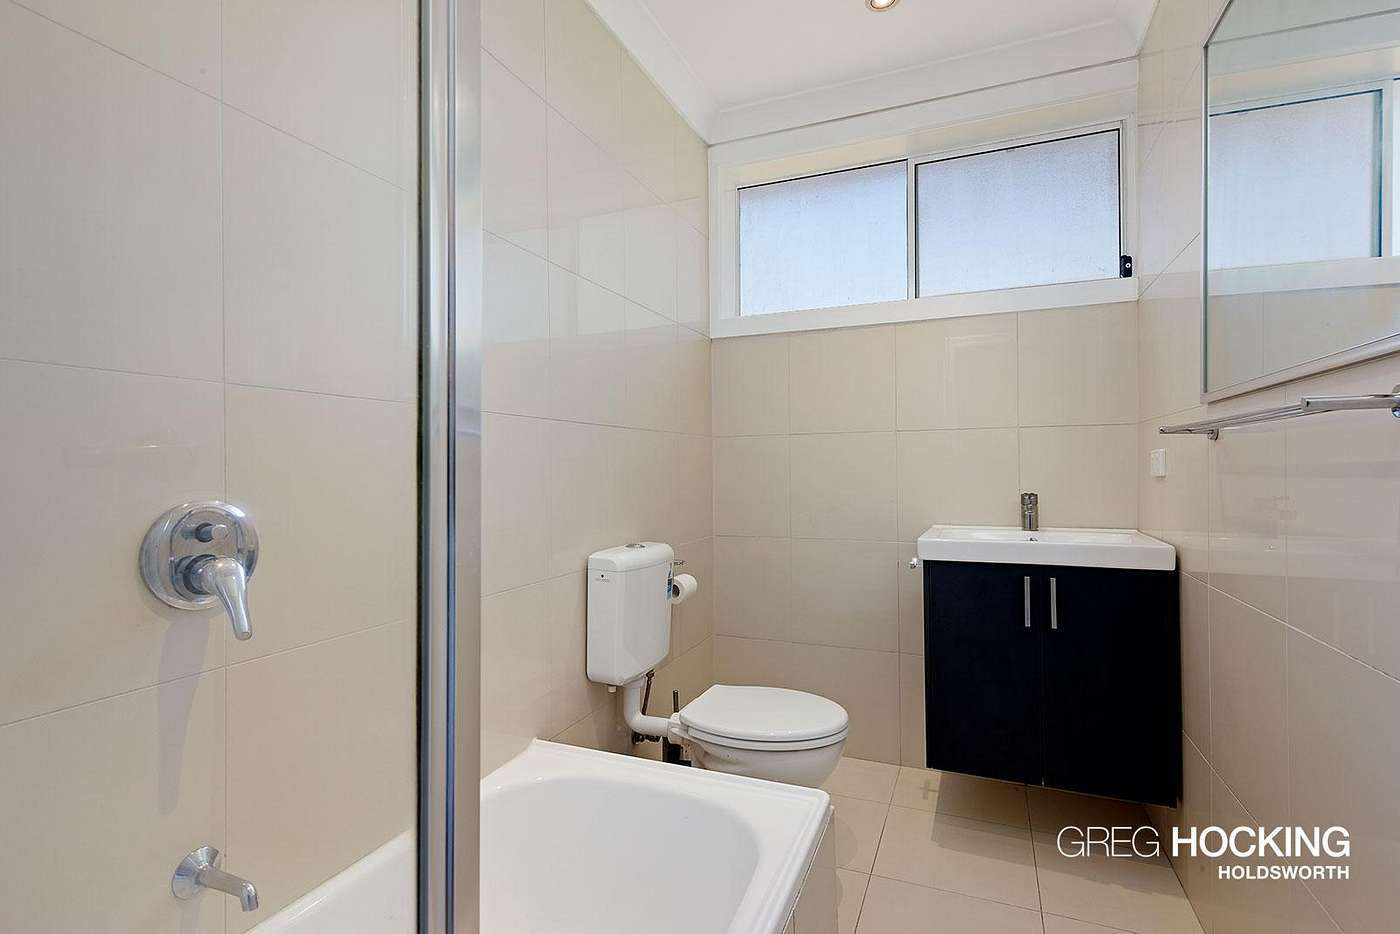 Seventh view of Homely apartment listing, 8/1 Marne Street, St Kilda East VIC 3183